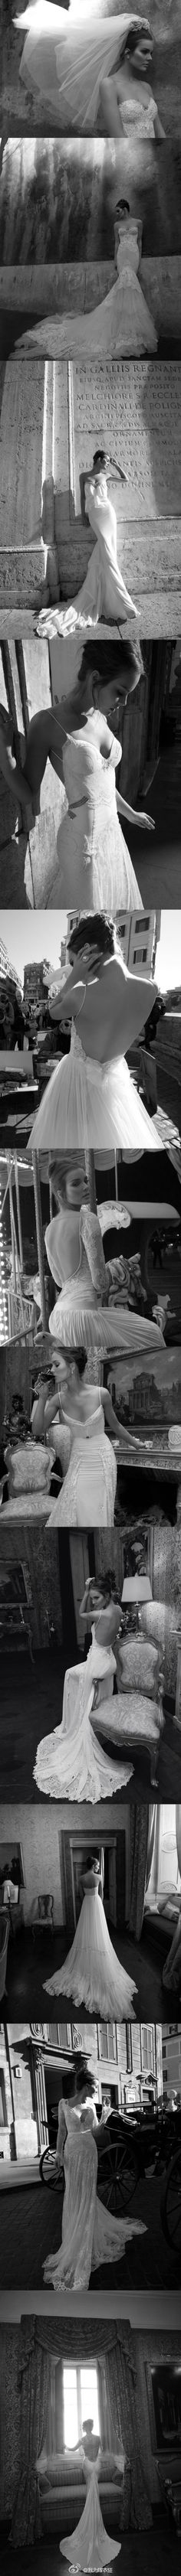 Galia Lahav 2012.. Gah Israeli designers know how to take your breath away